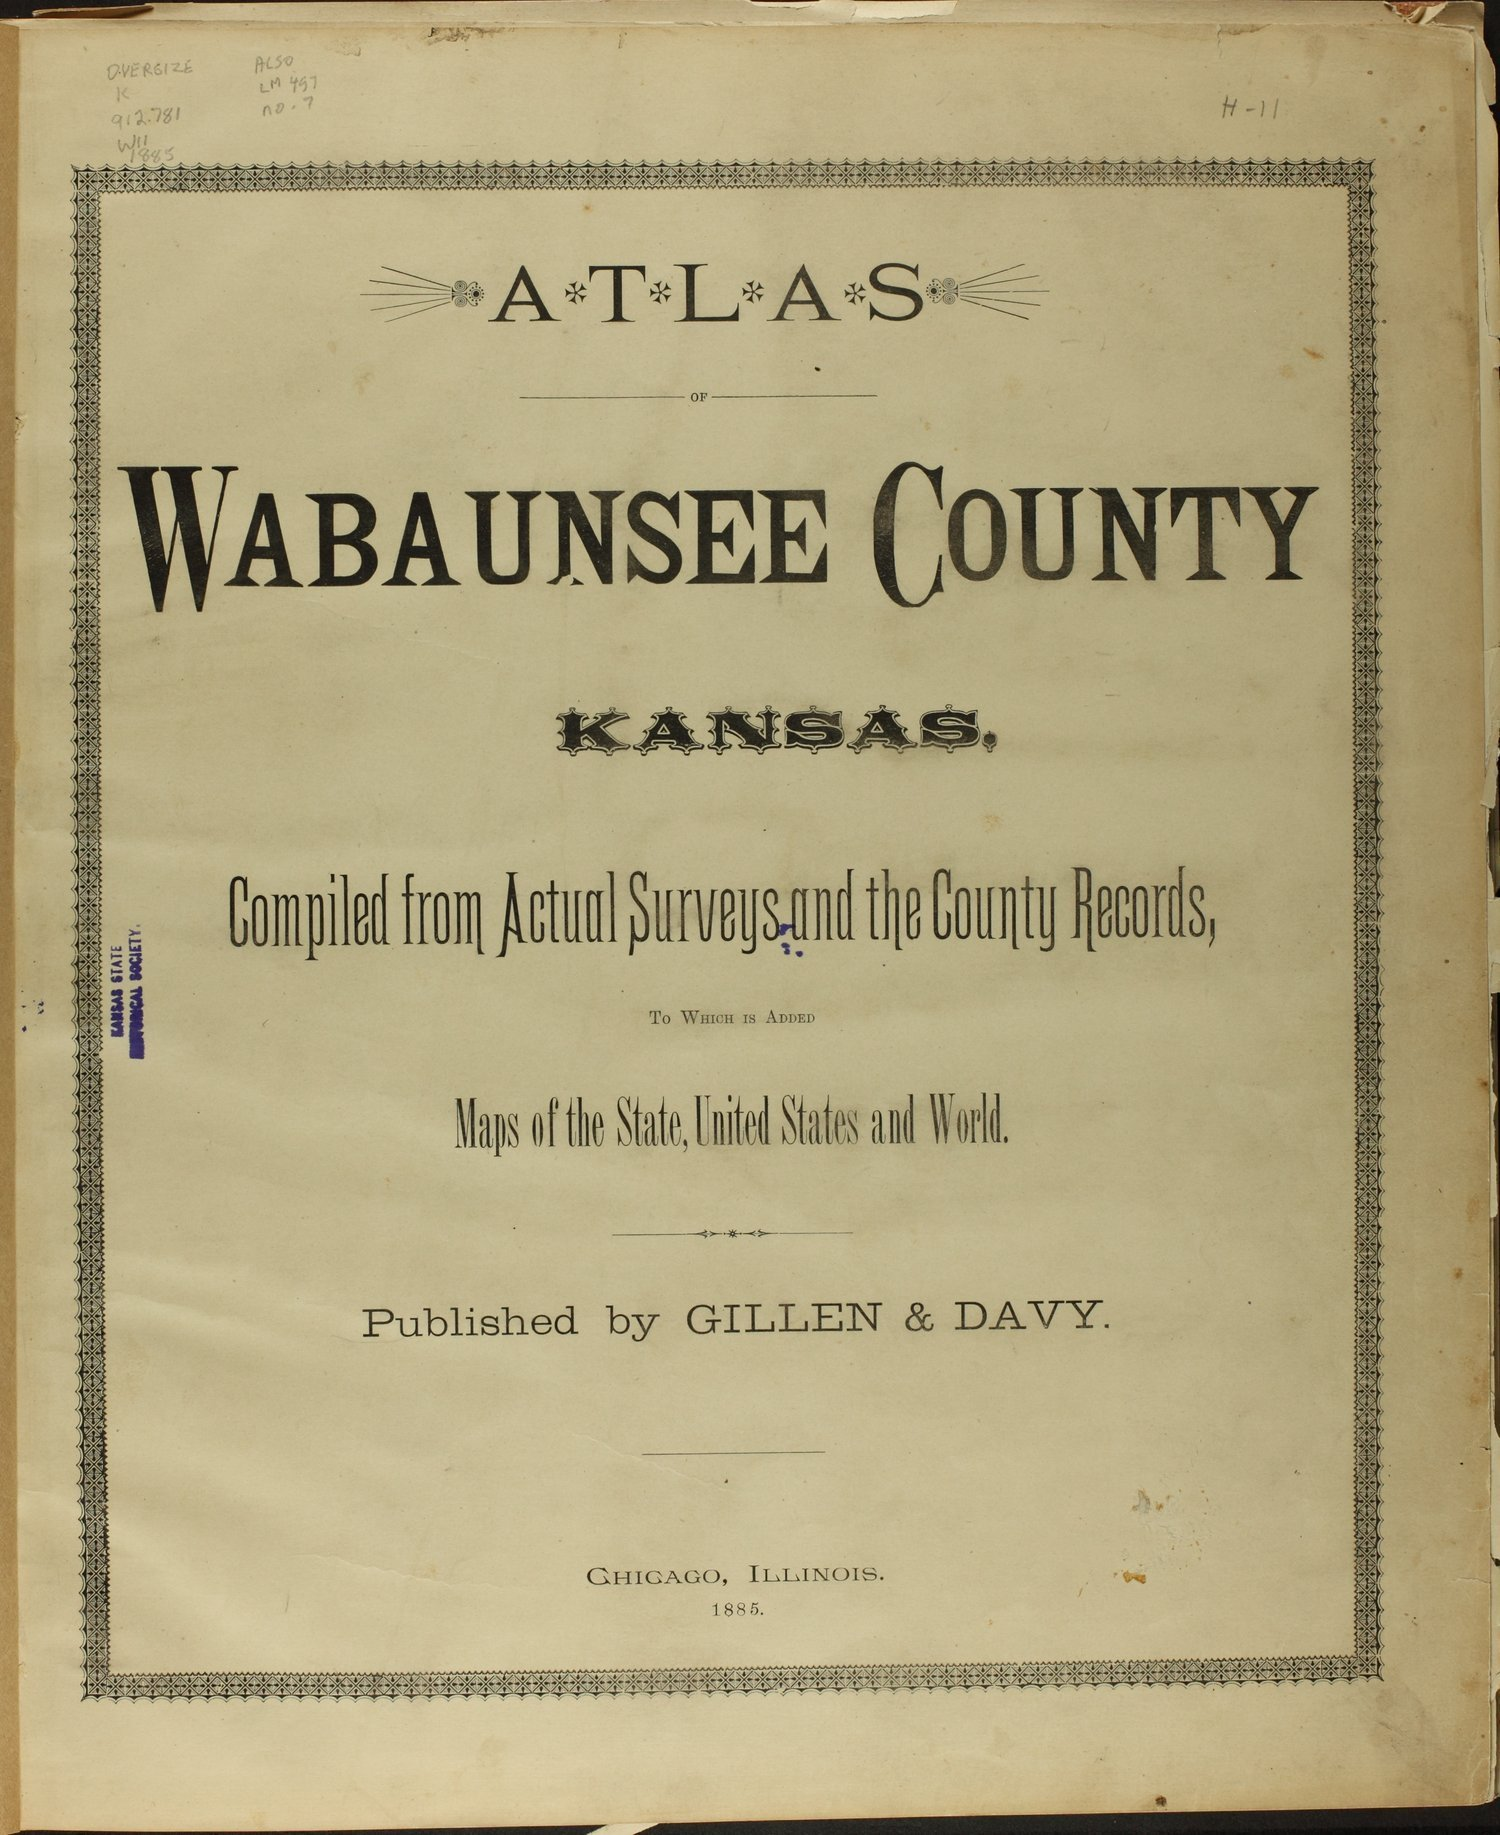 Atlas of Wabaunsee County, Kansas - Title Page